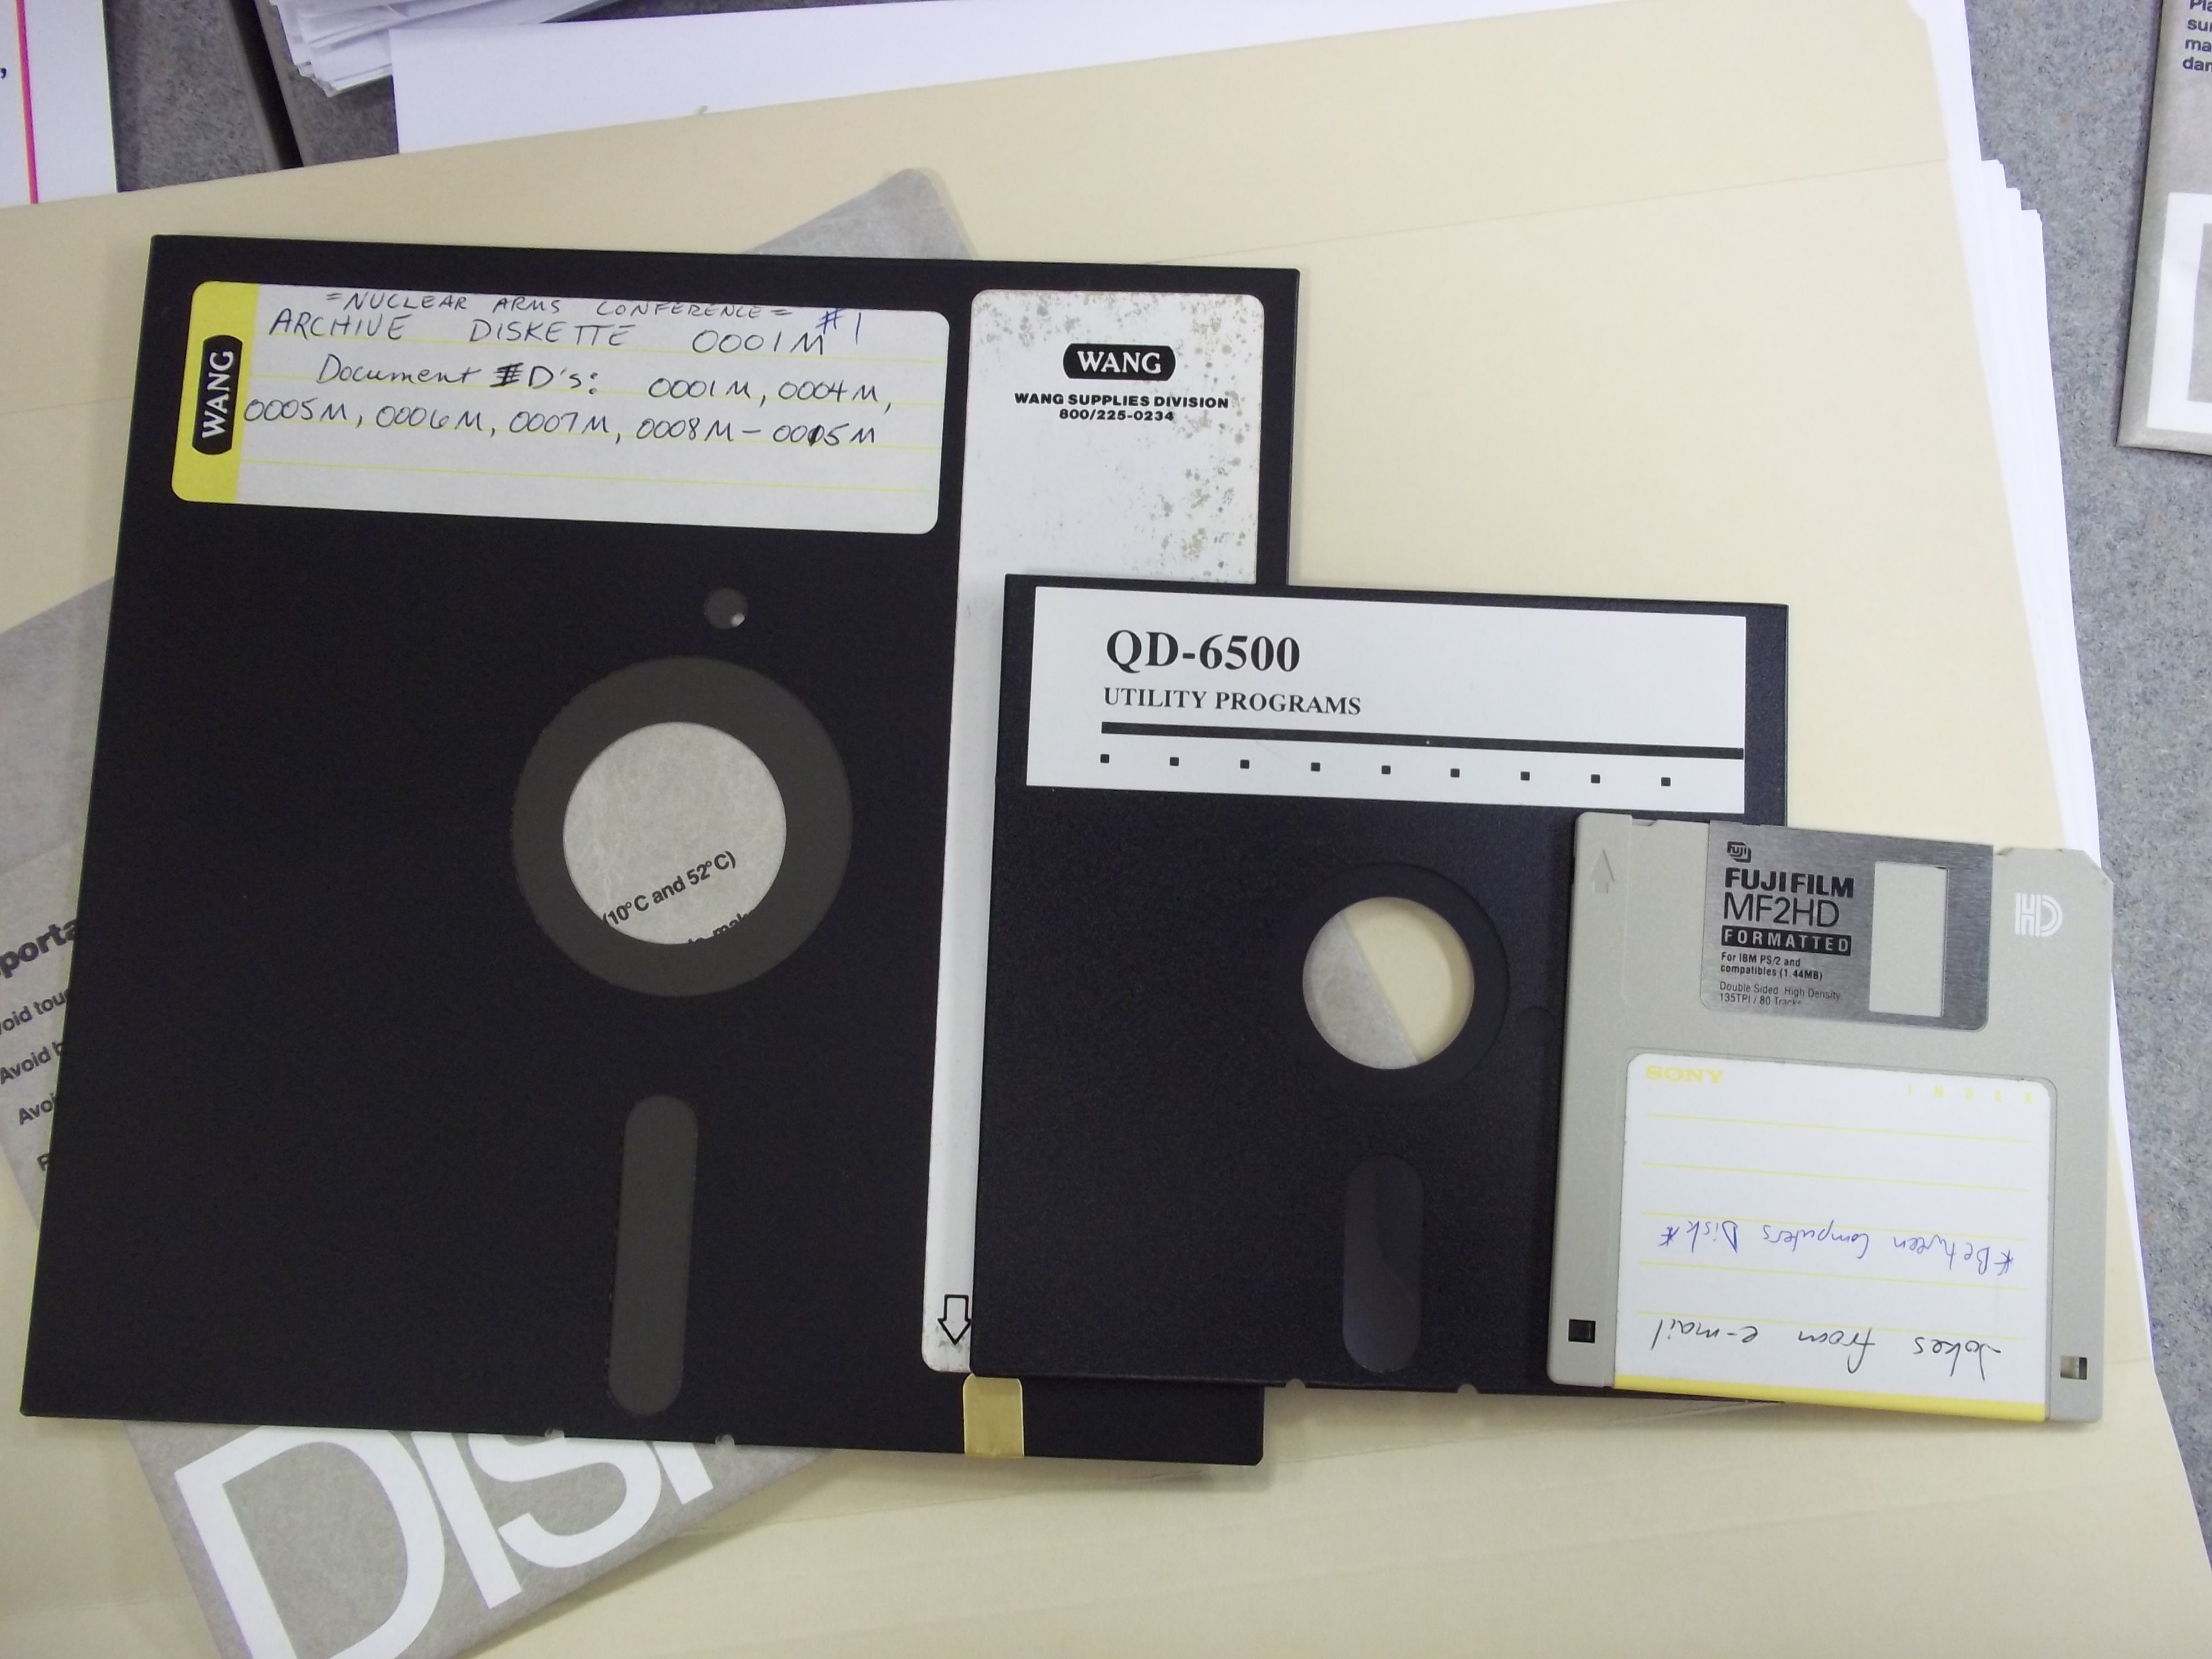 The US Air Force has finally stopped using floppy disks in its nuclear weapons system | PC Gamer